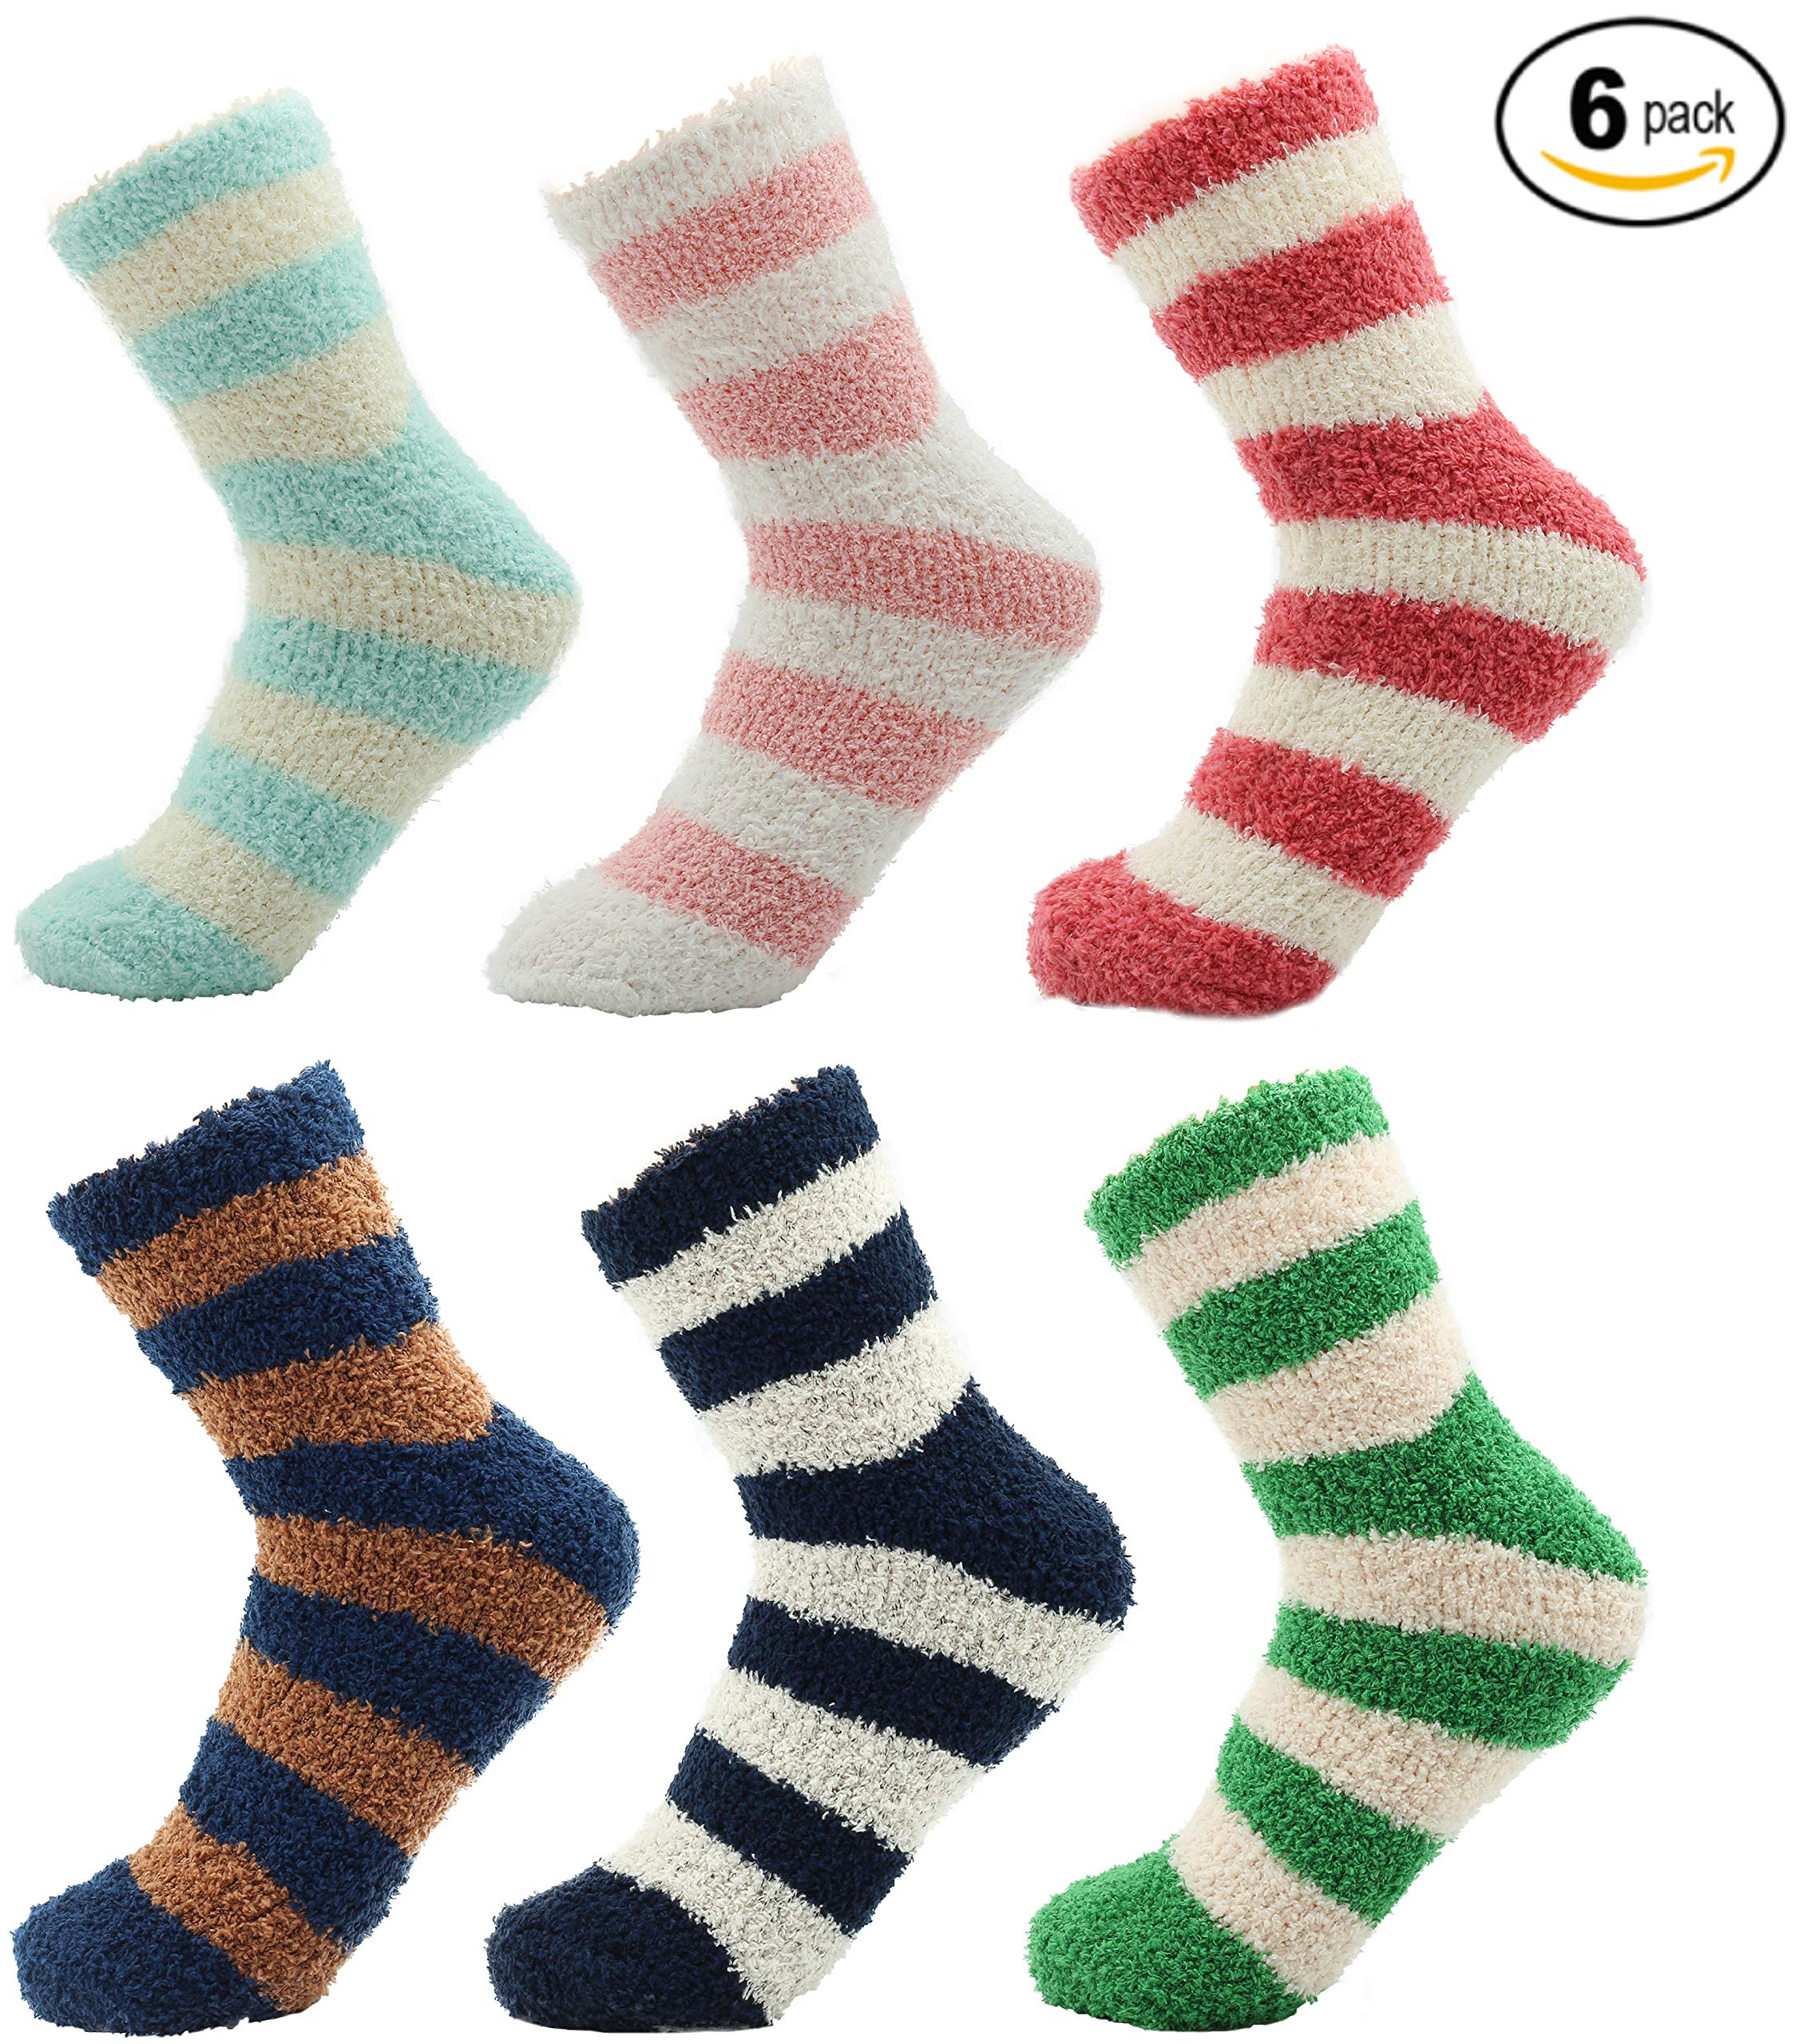 Cosy Socks for Women Fluffy Super Soft Thermal Womens Loungewear Slipper Bed Socks Pack of 6